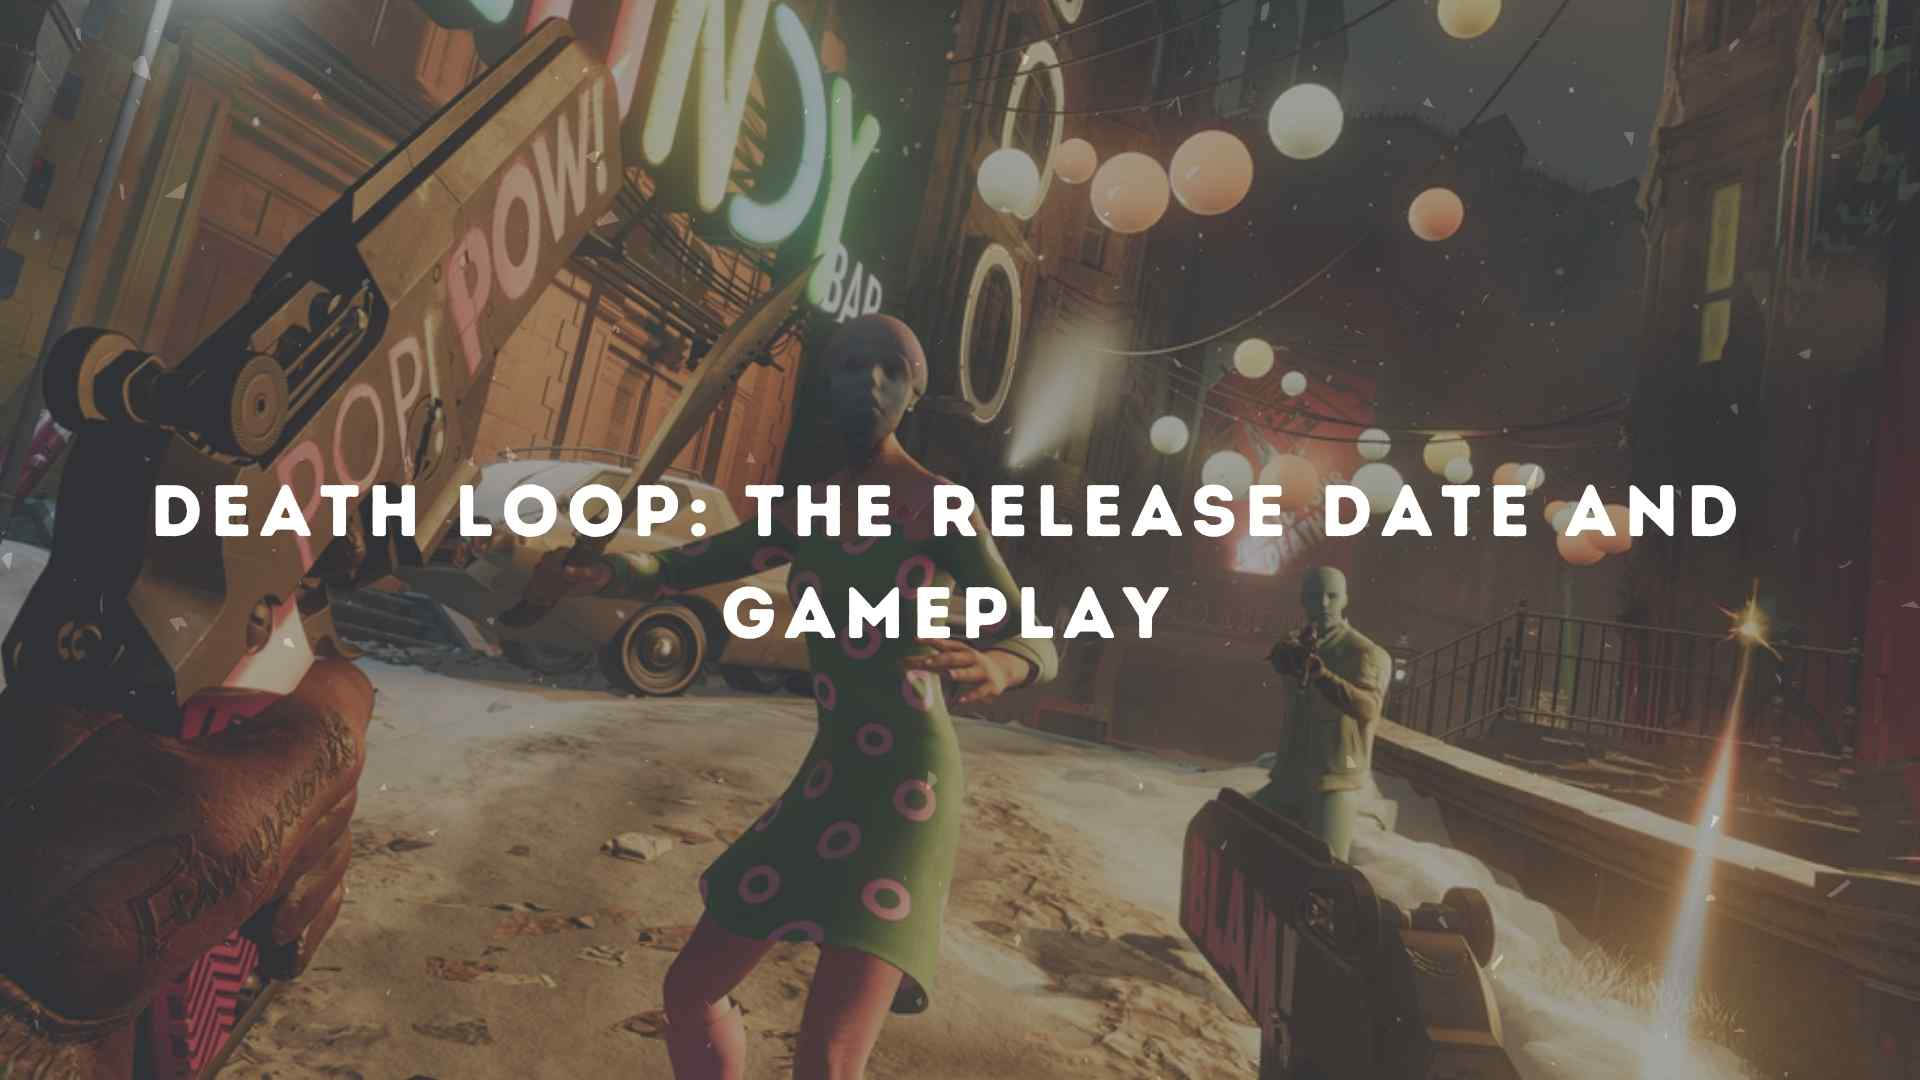 Death loop The Release Date and GamePlay